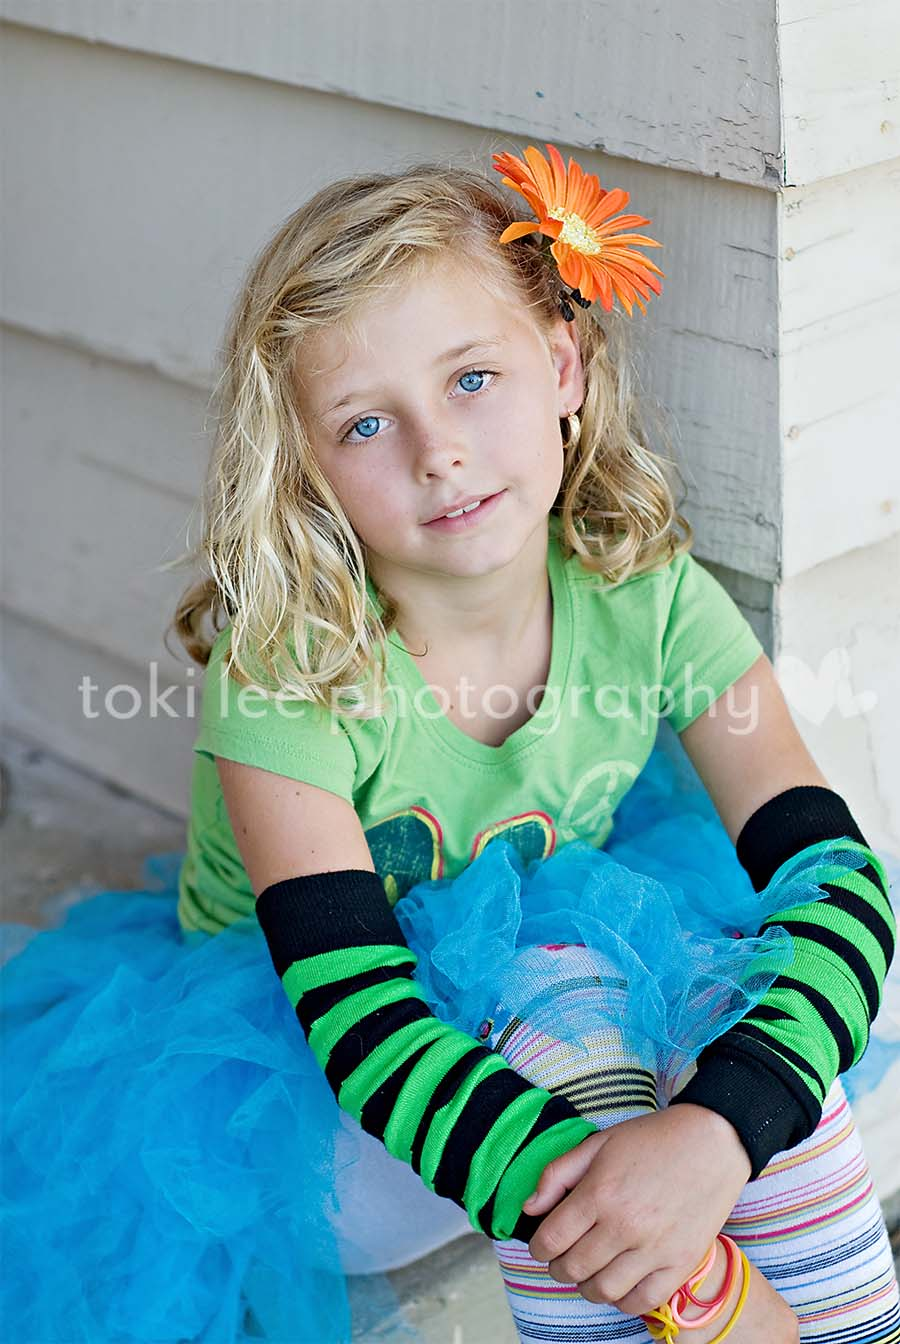 Child Model - Thousand Oaks Kids Photography